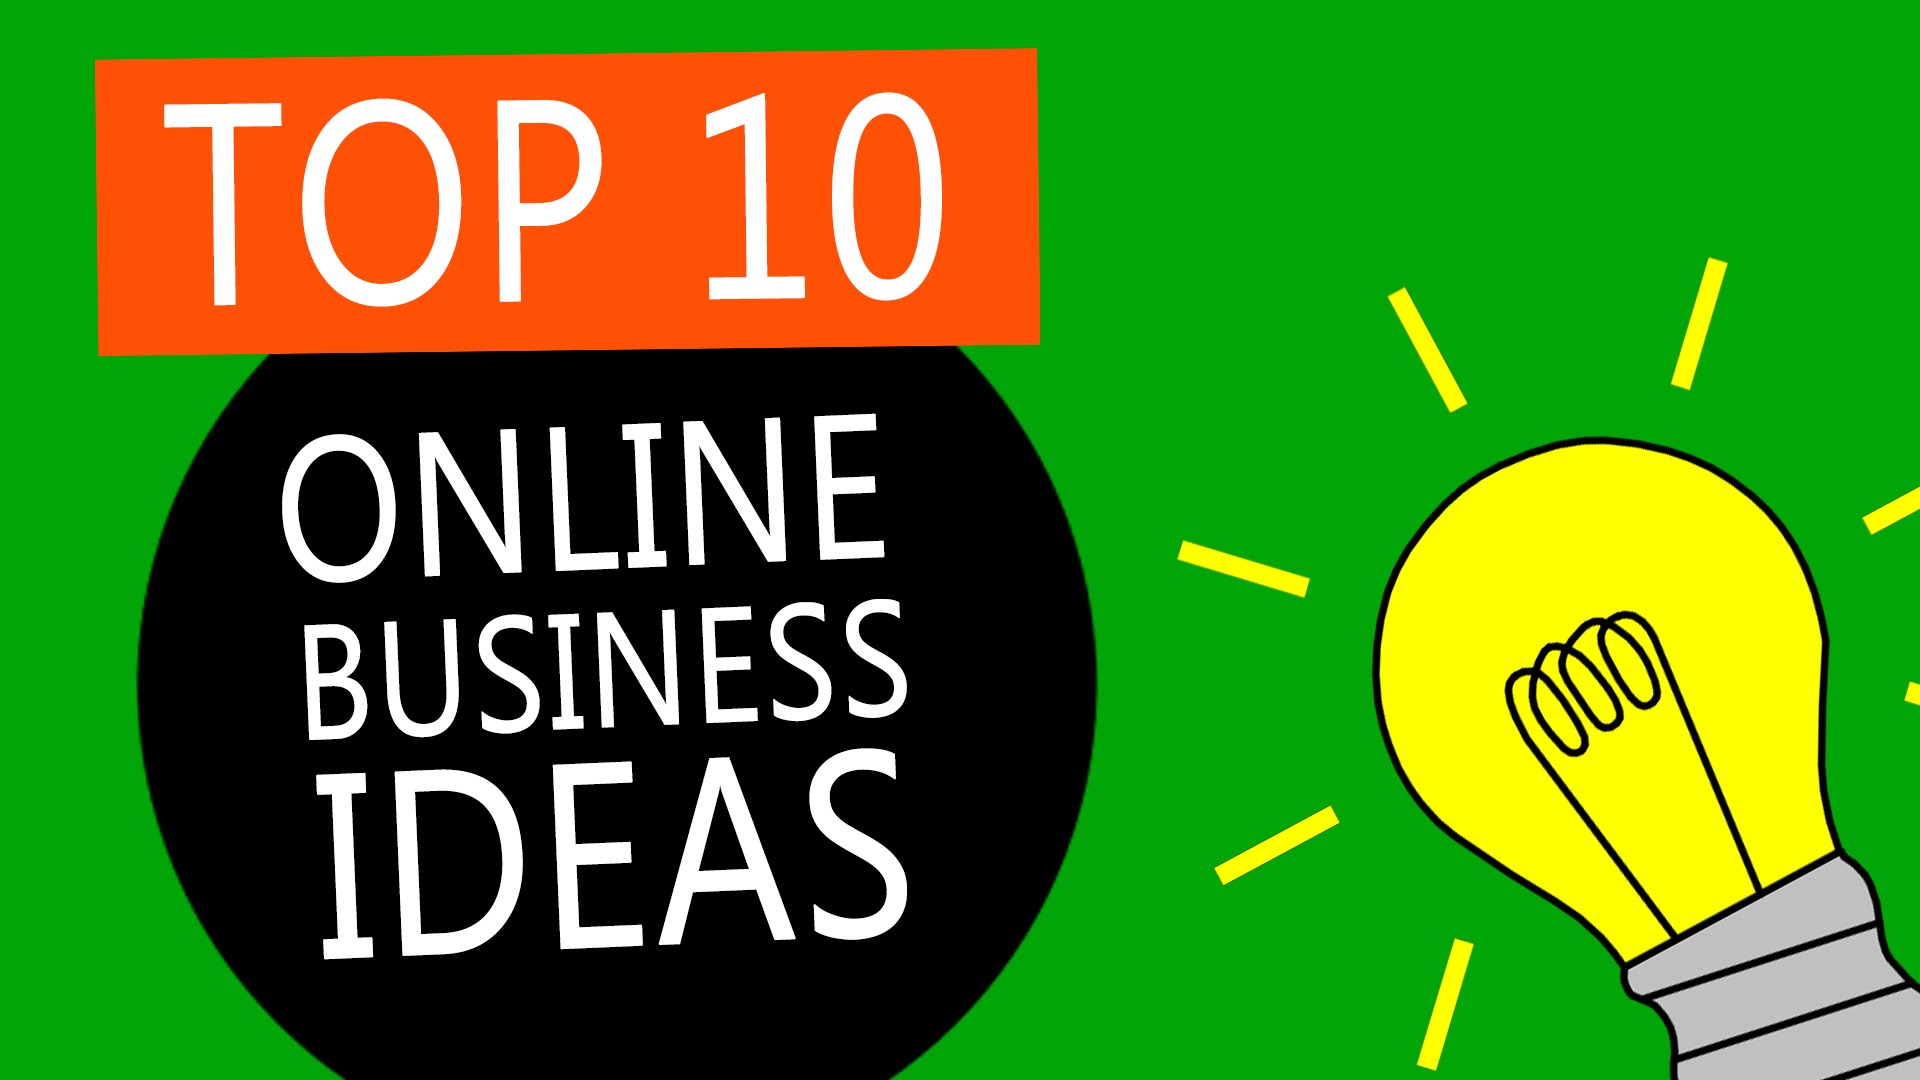 The Best Online Business to Start for Beginners